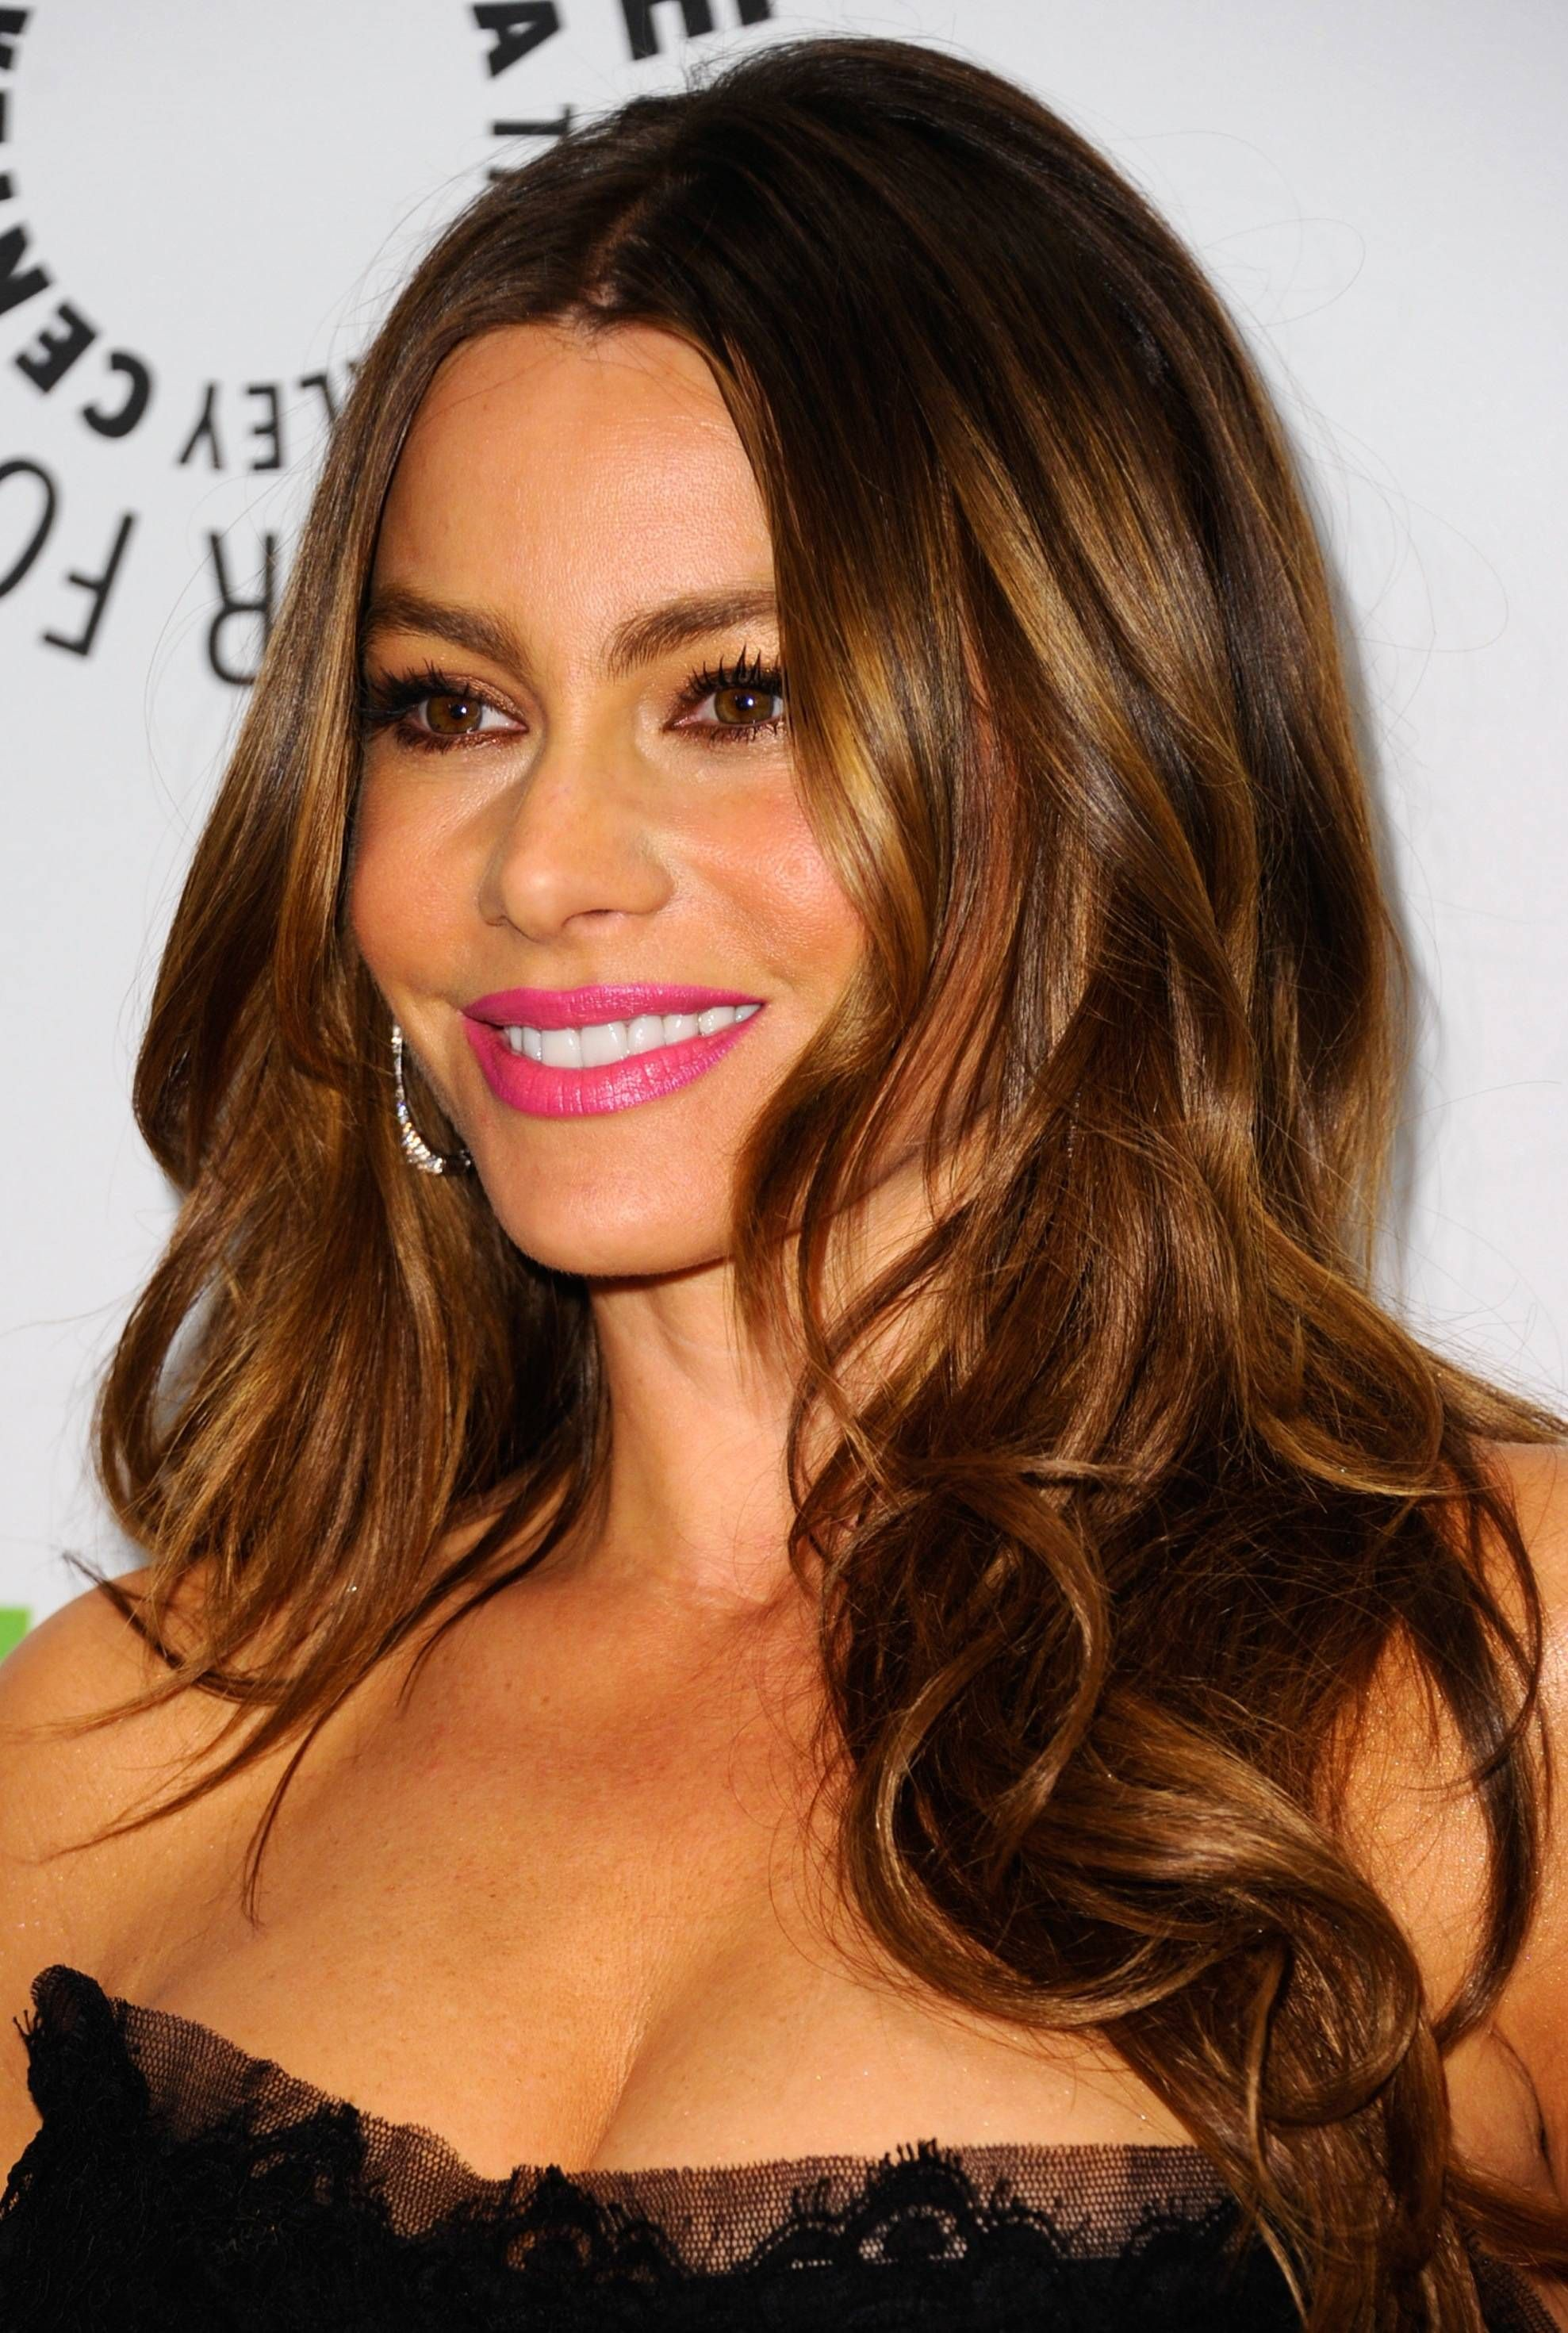 19 Ways to Style Long, Wavy Hair | Sophia vergara, Hair coloring ...